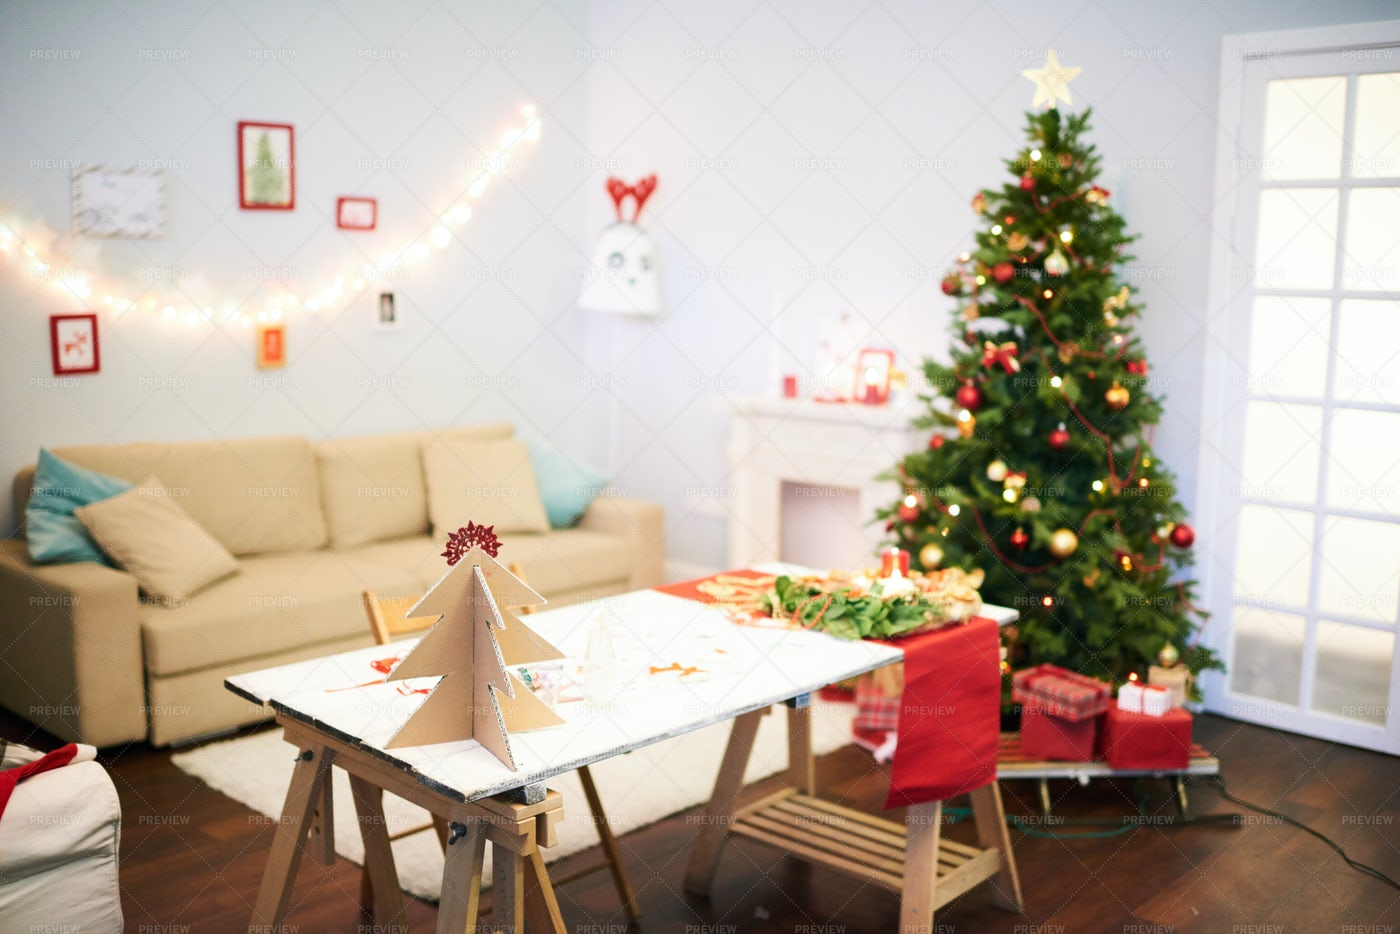 Last Preparations For Christmas...: Stock Photos